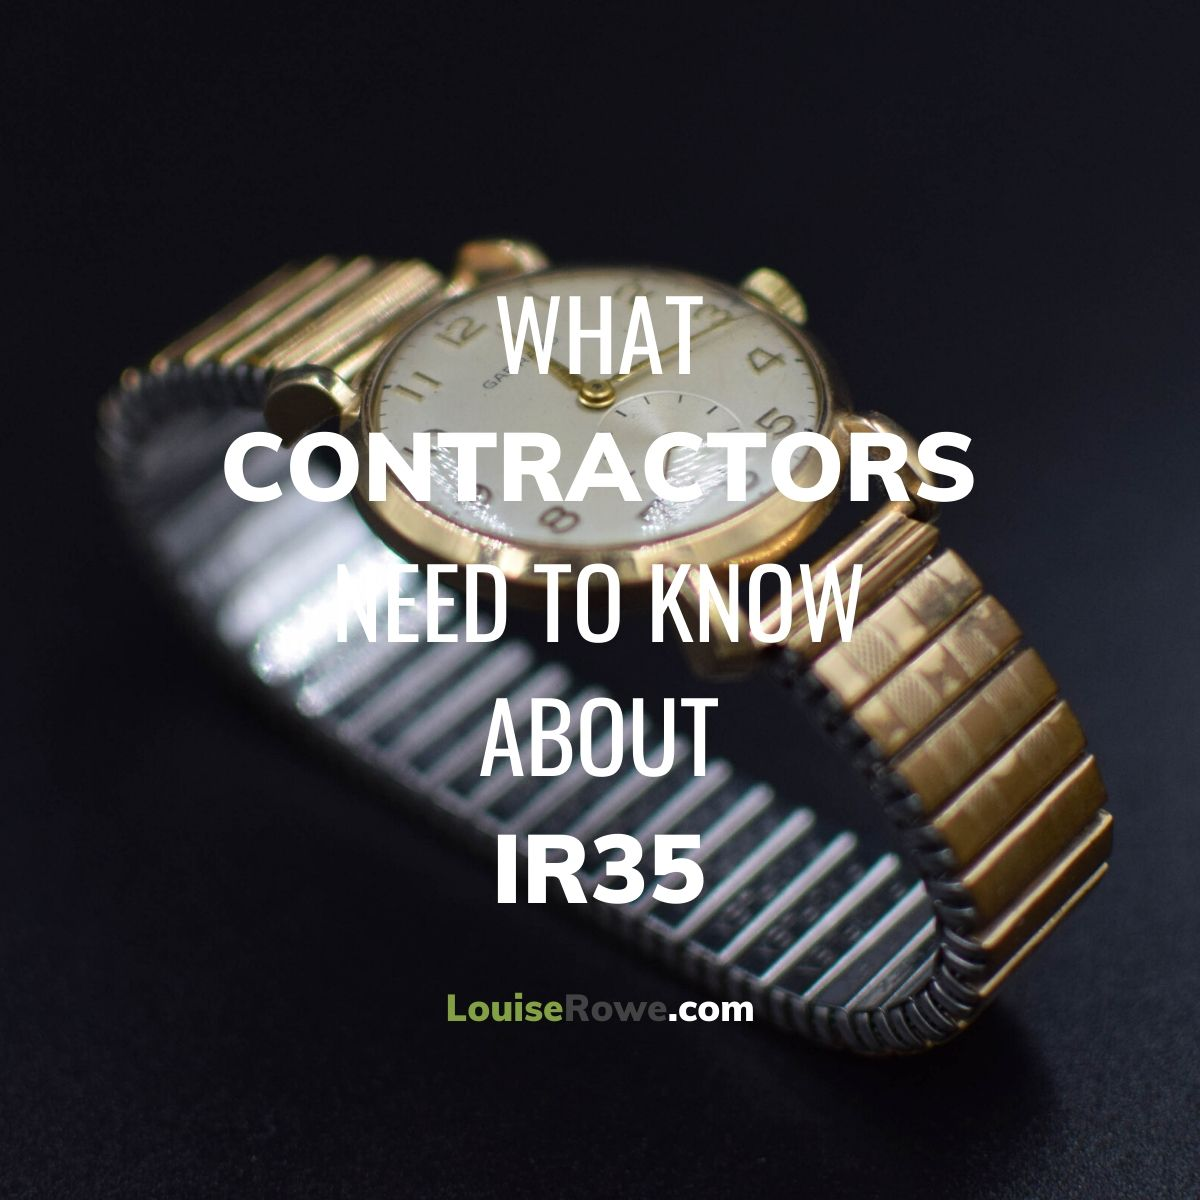 What Contractors Need to Know About IR35 (title). Photo credit © L Rowe 2017